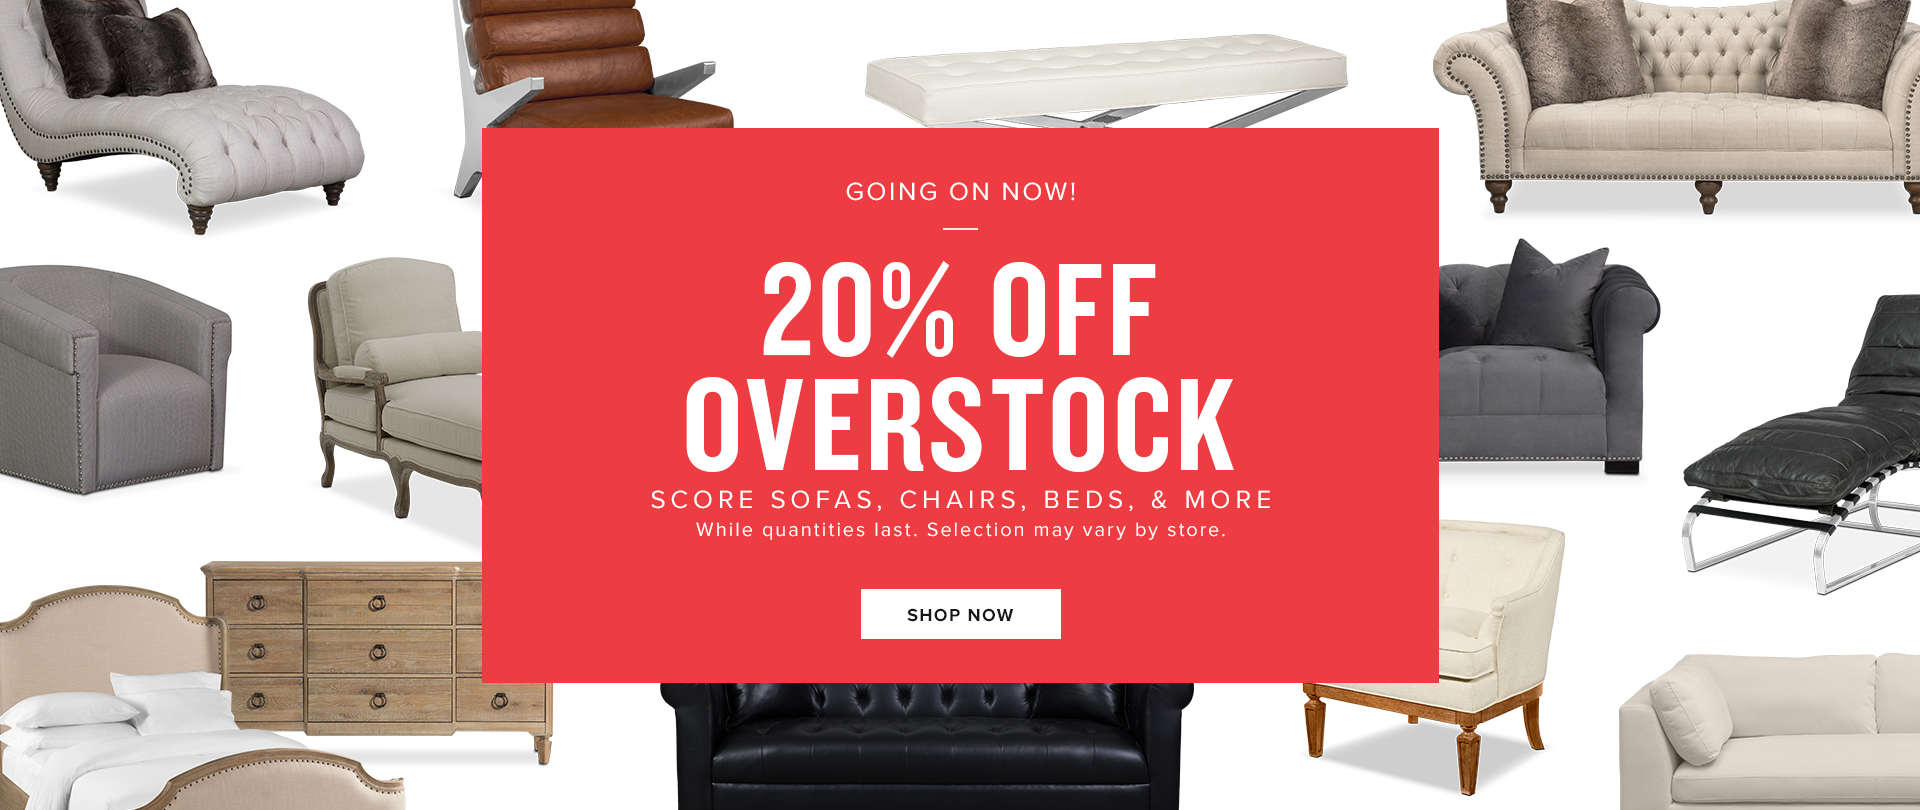 going on now! 20% off overstock. shop now.